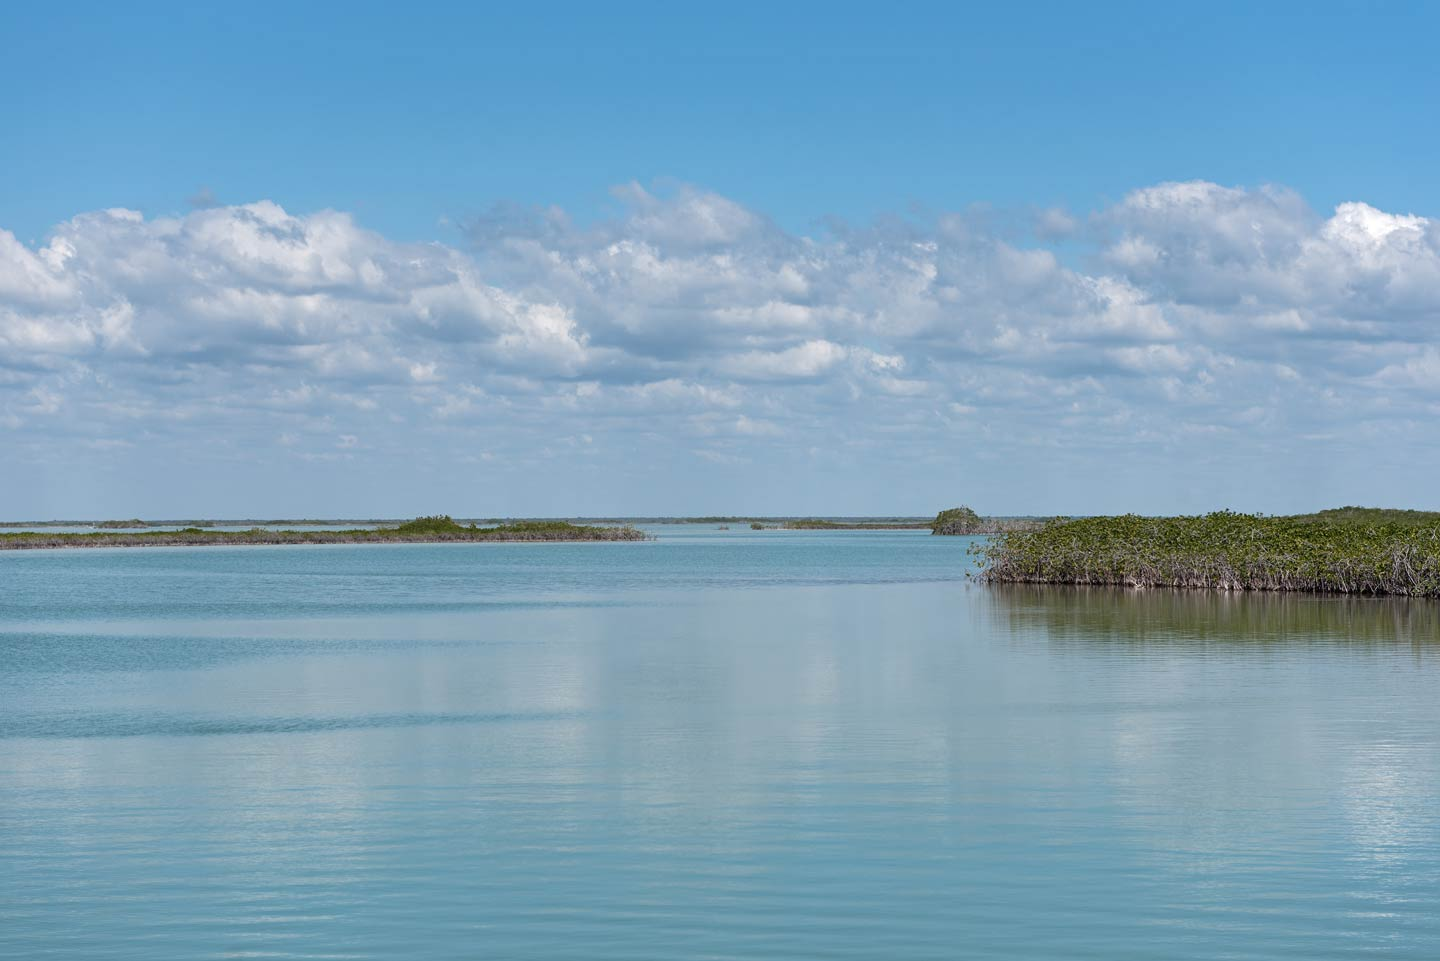 A view over Ascension Bay showing some grassy waters and a blue sky